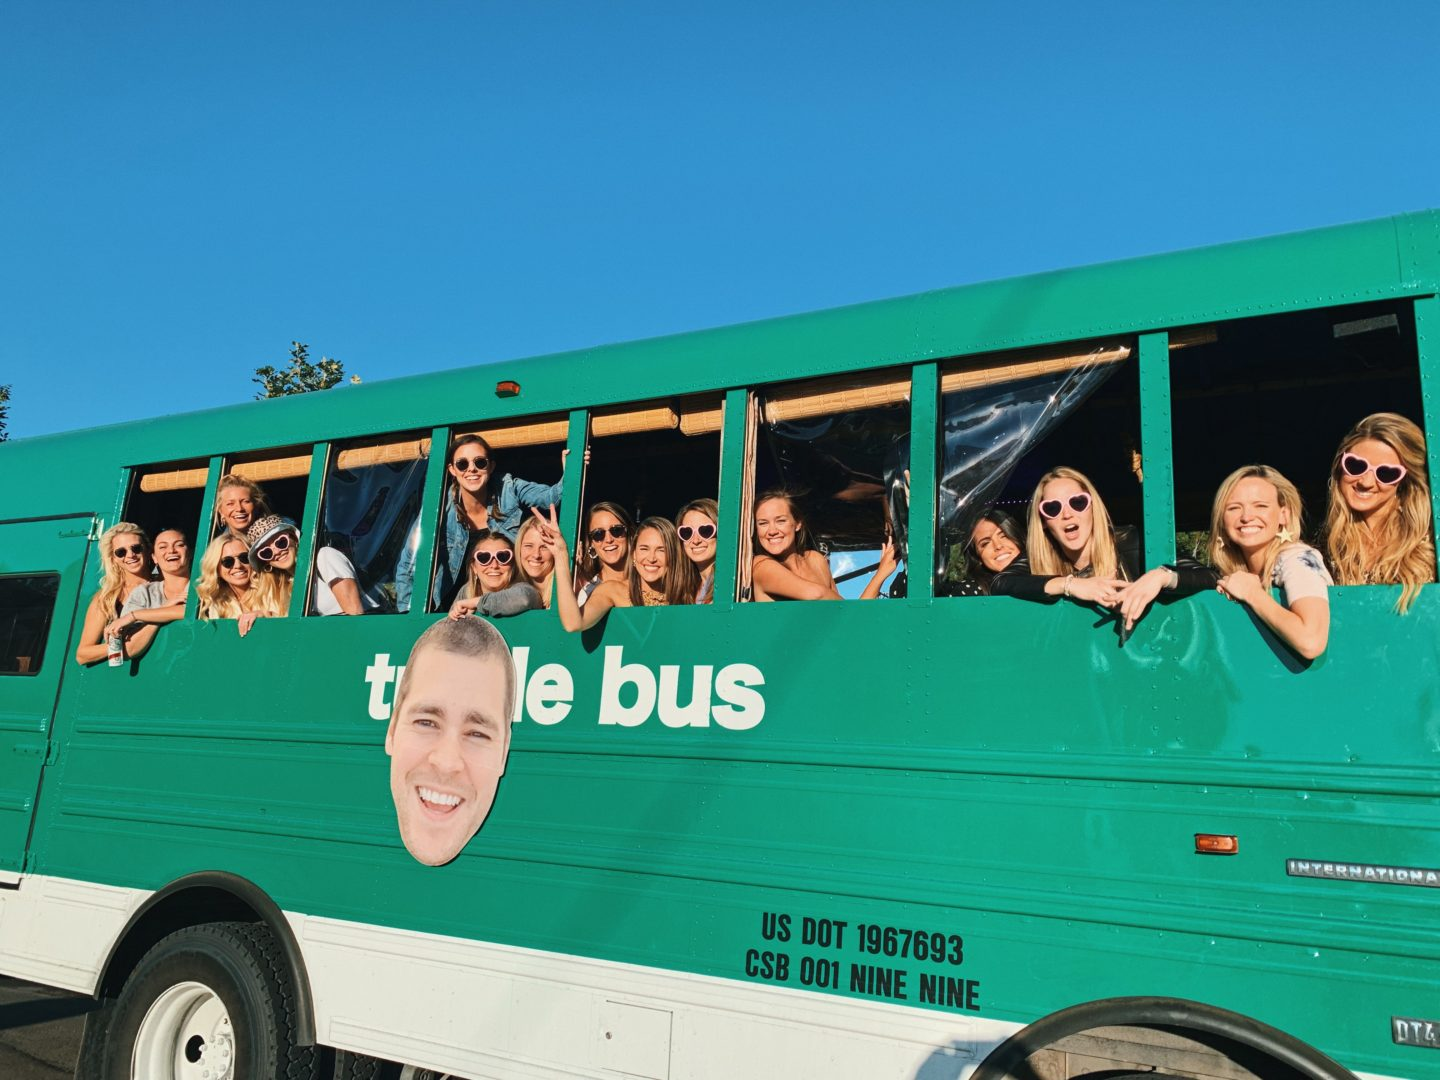 Riding on the Turtle Bus from Denver to Red Rocks Amphitheater!